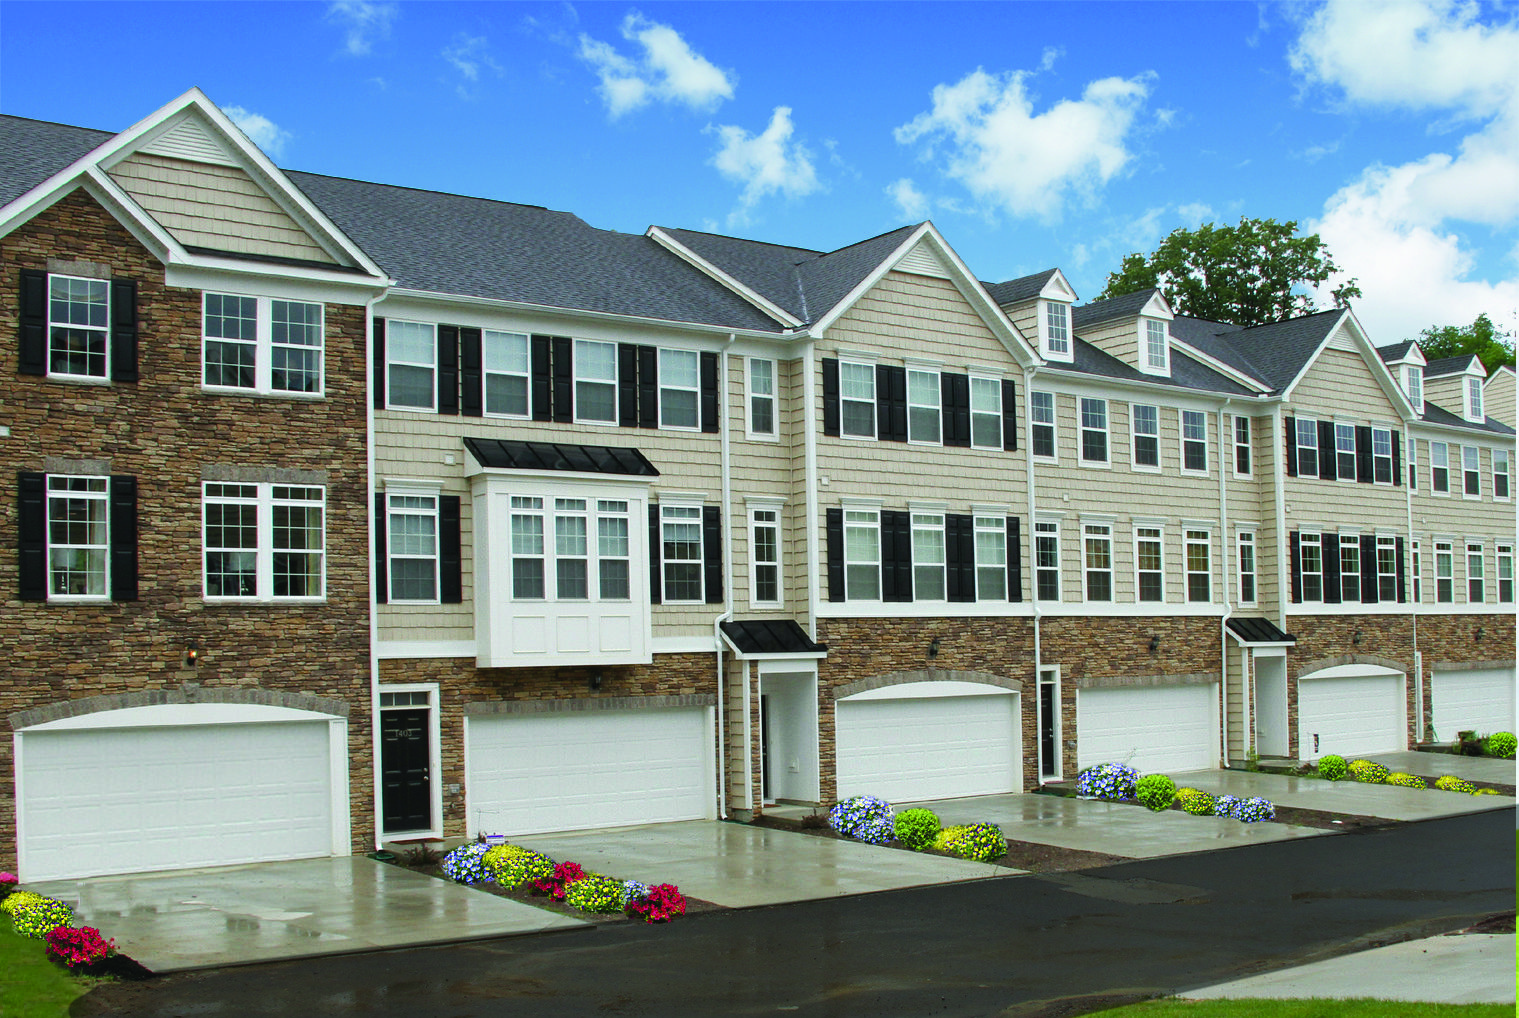 The Beautiful Windsor Townhomes With Stone And Siding Fronts Bay Windows 2 Car Garages Morgantown Townhouse Morgantown Wv